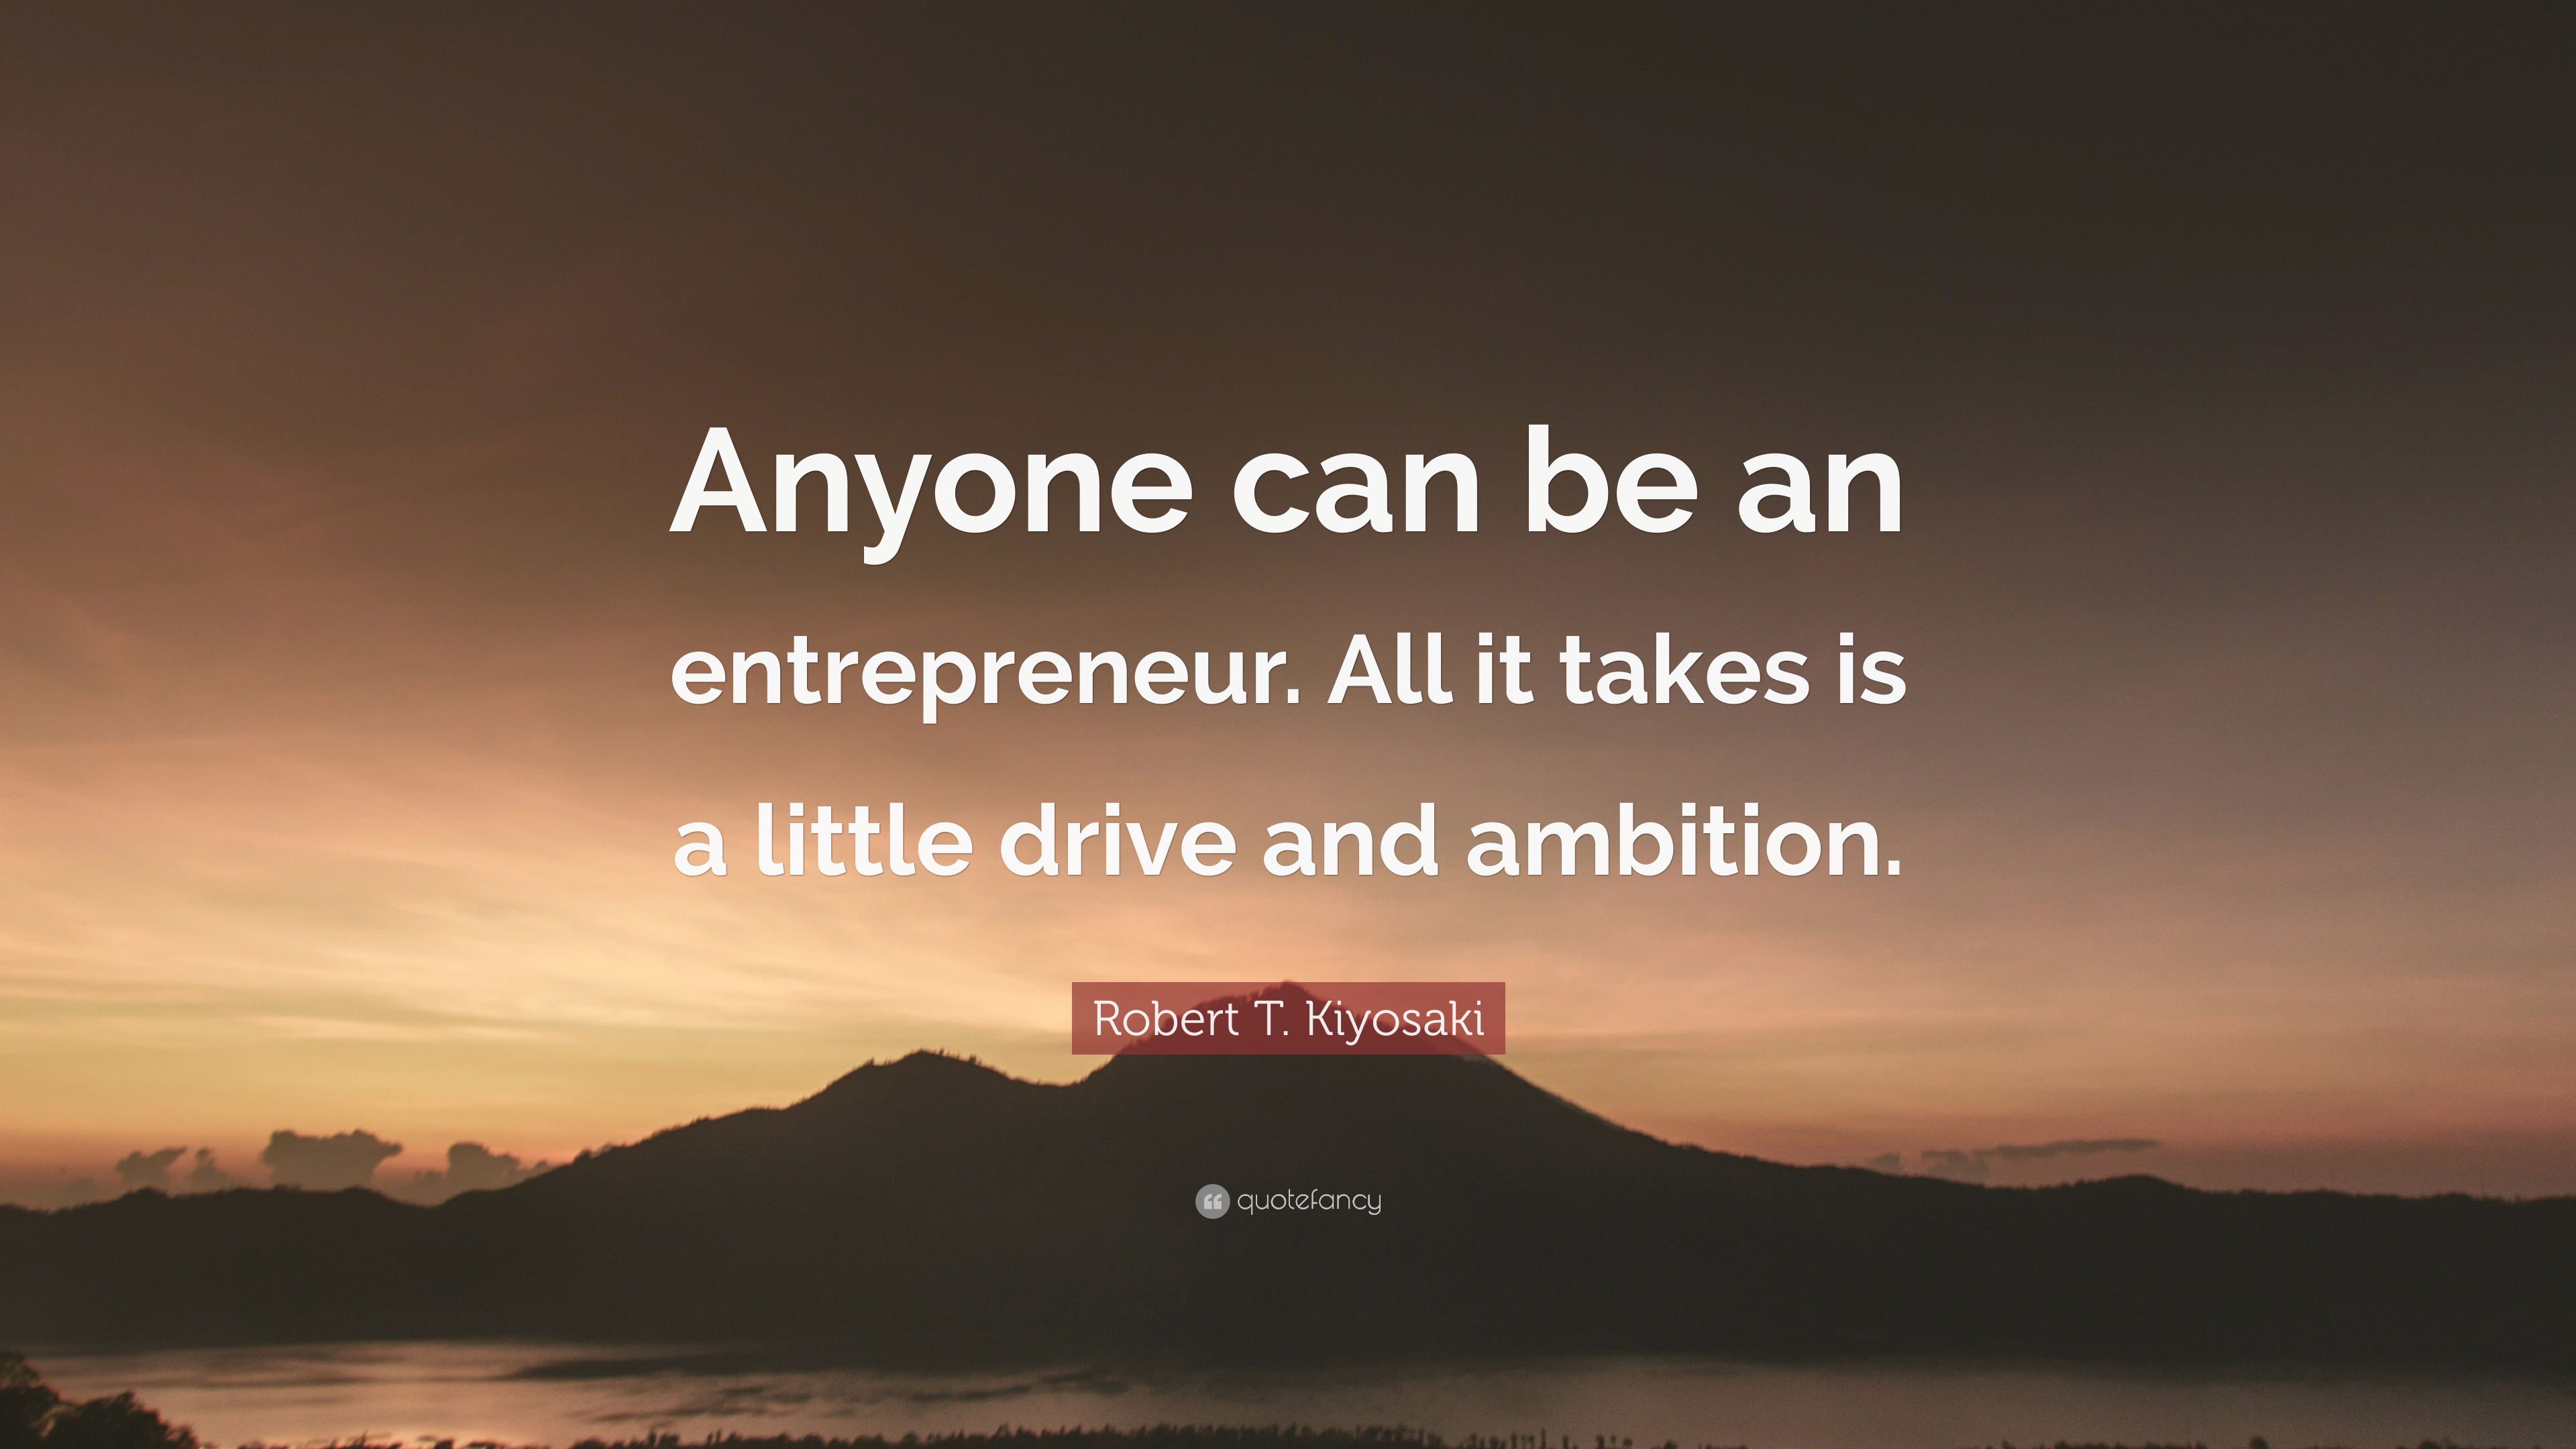 who can be entrepreneur Students who desire to get into the business sector should earn entrepreneurship degrees and practical skills needed to become entrepreneurs students can study on their own schedule and benefit from the flexibility and freedom that online learning offers.